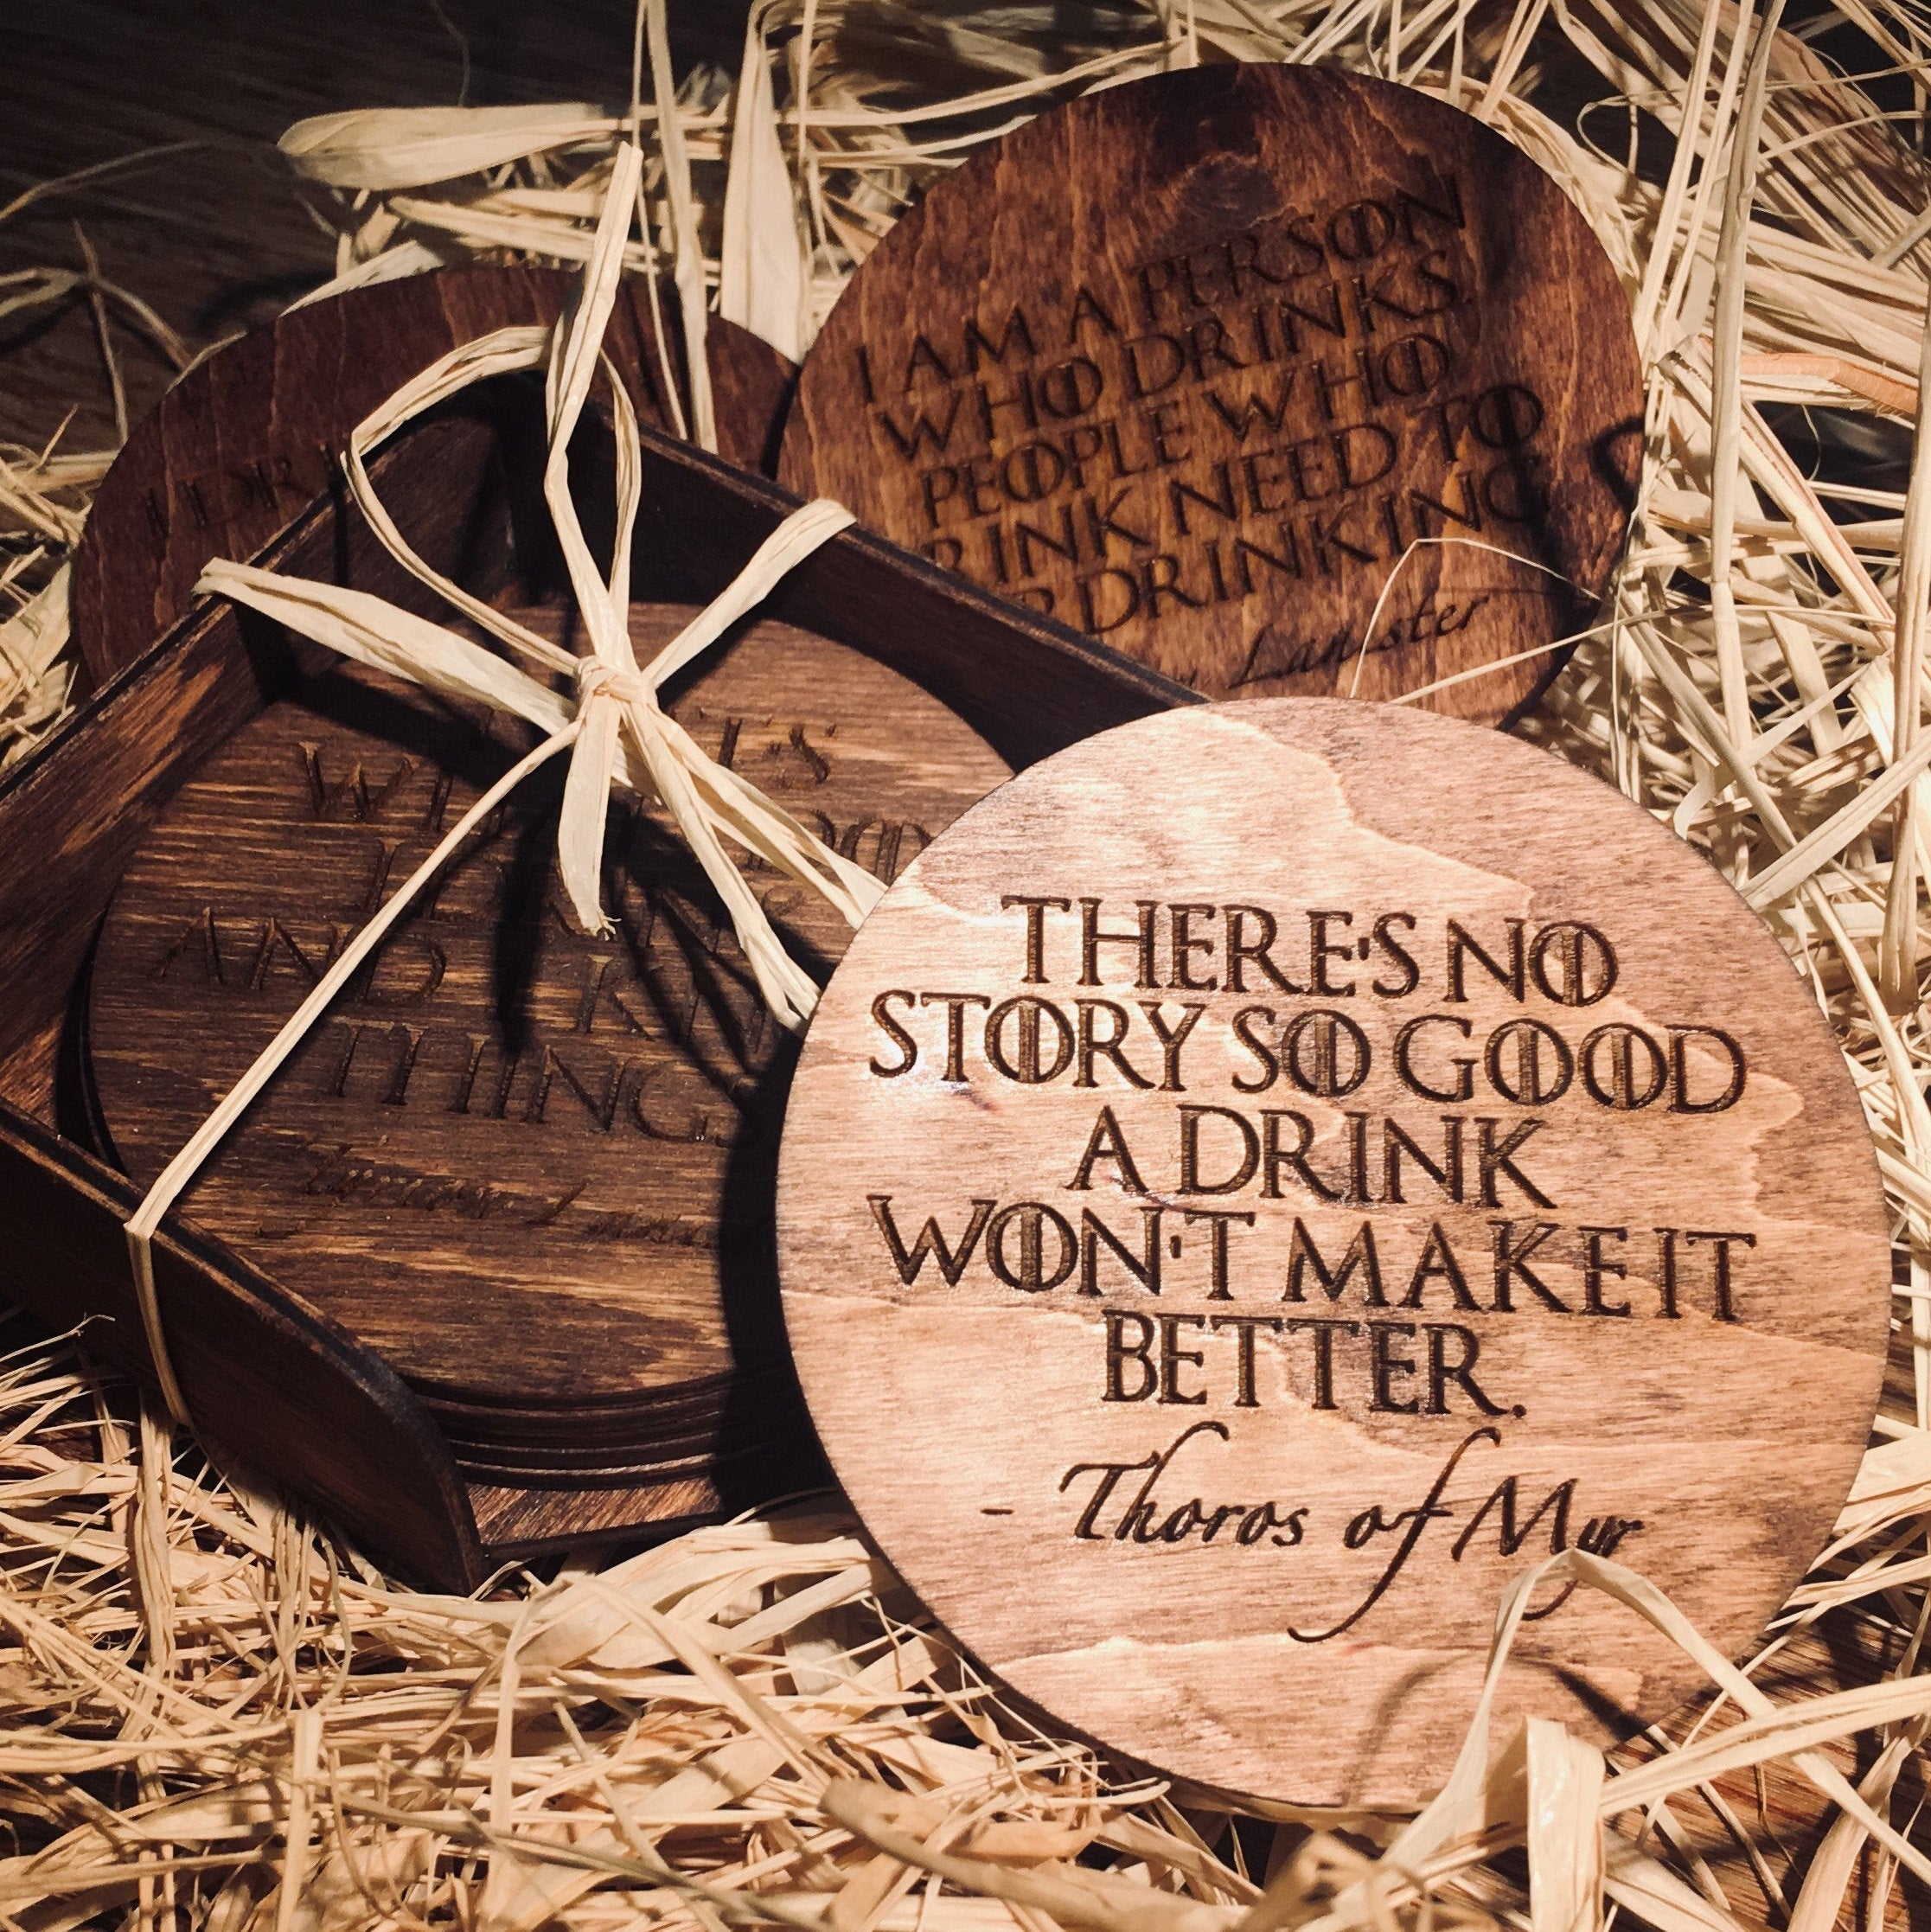 Game Of Thrones Quotes Wooden Coasters - LocalBeavers